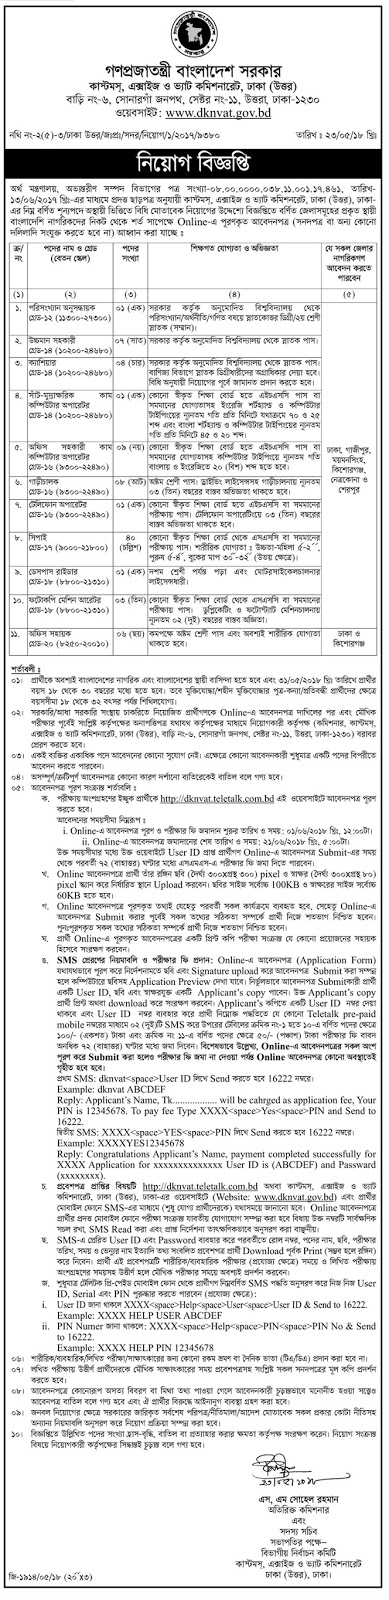 Customs, Excise & VAT Commissionerate, Dhaka (North) Job Circular 2018